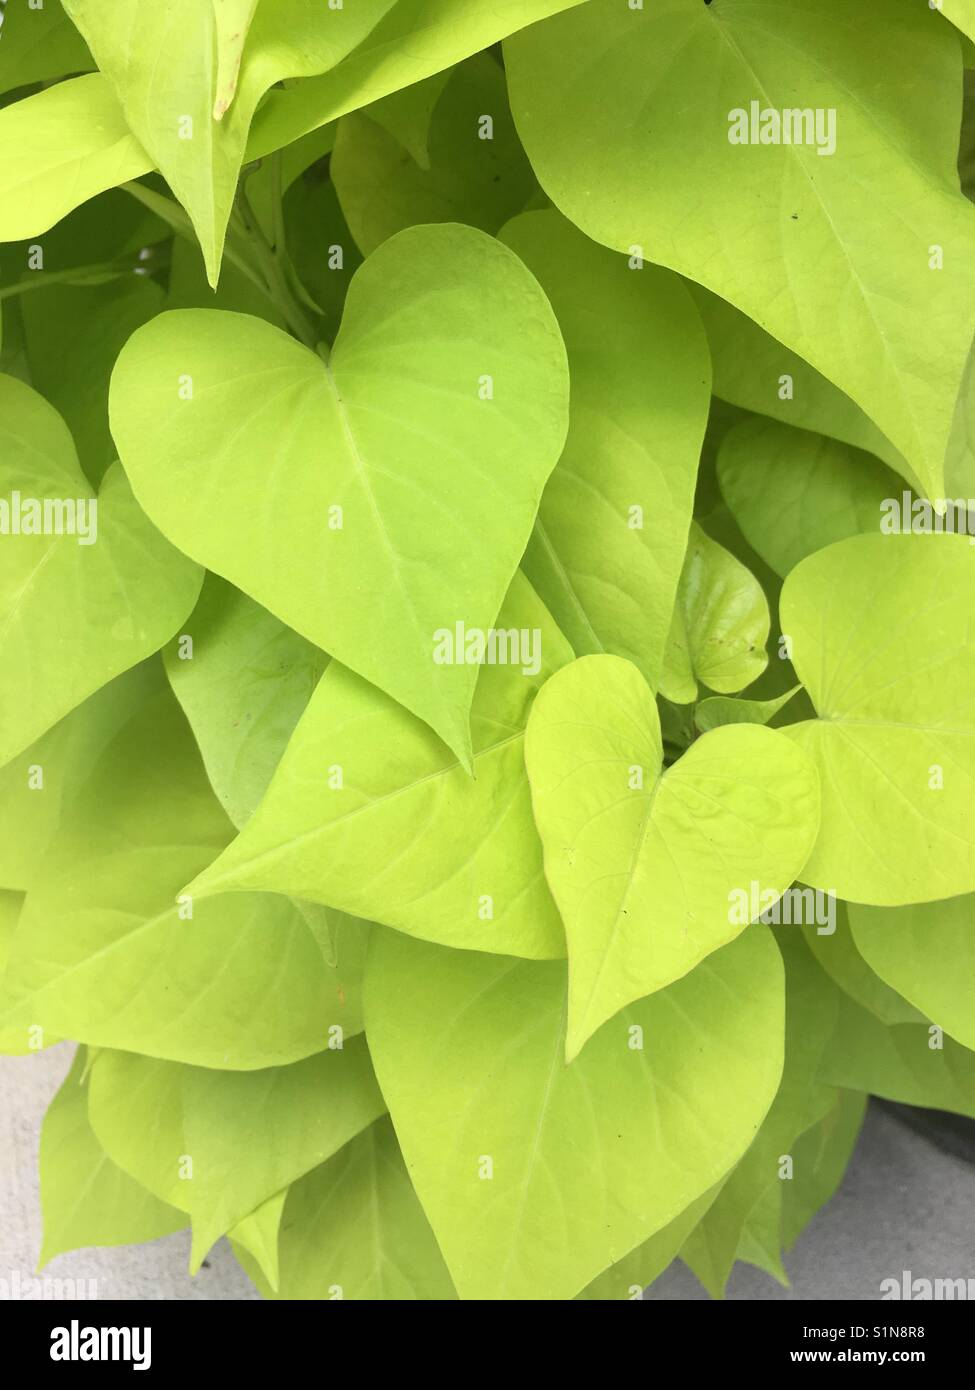 Heart Shaped Bright Green Leaves Stock Photo Alamy